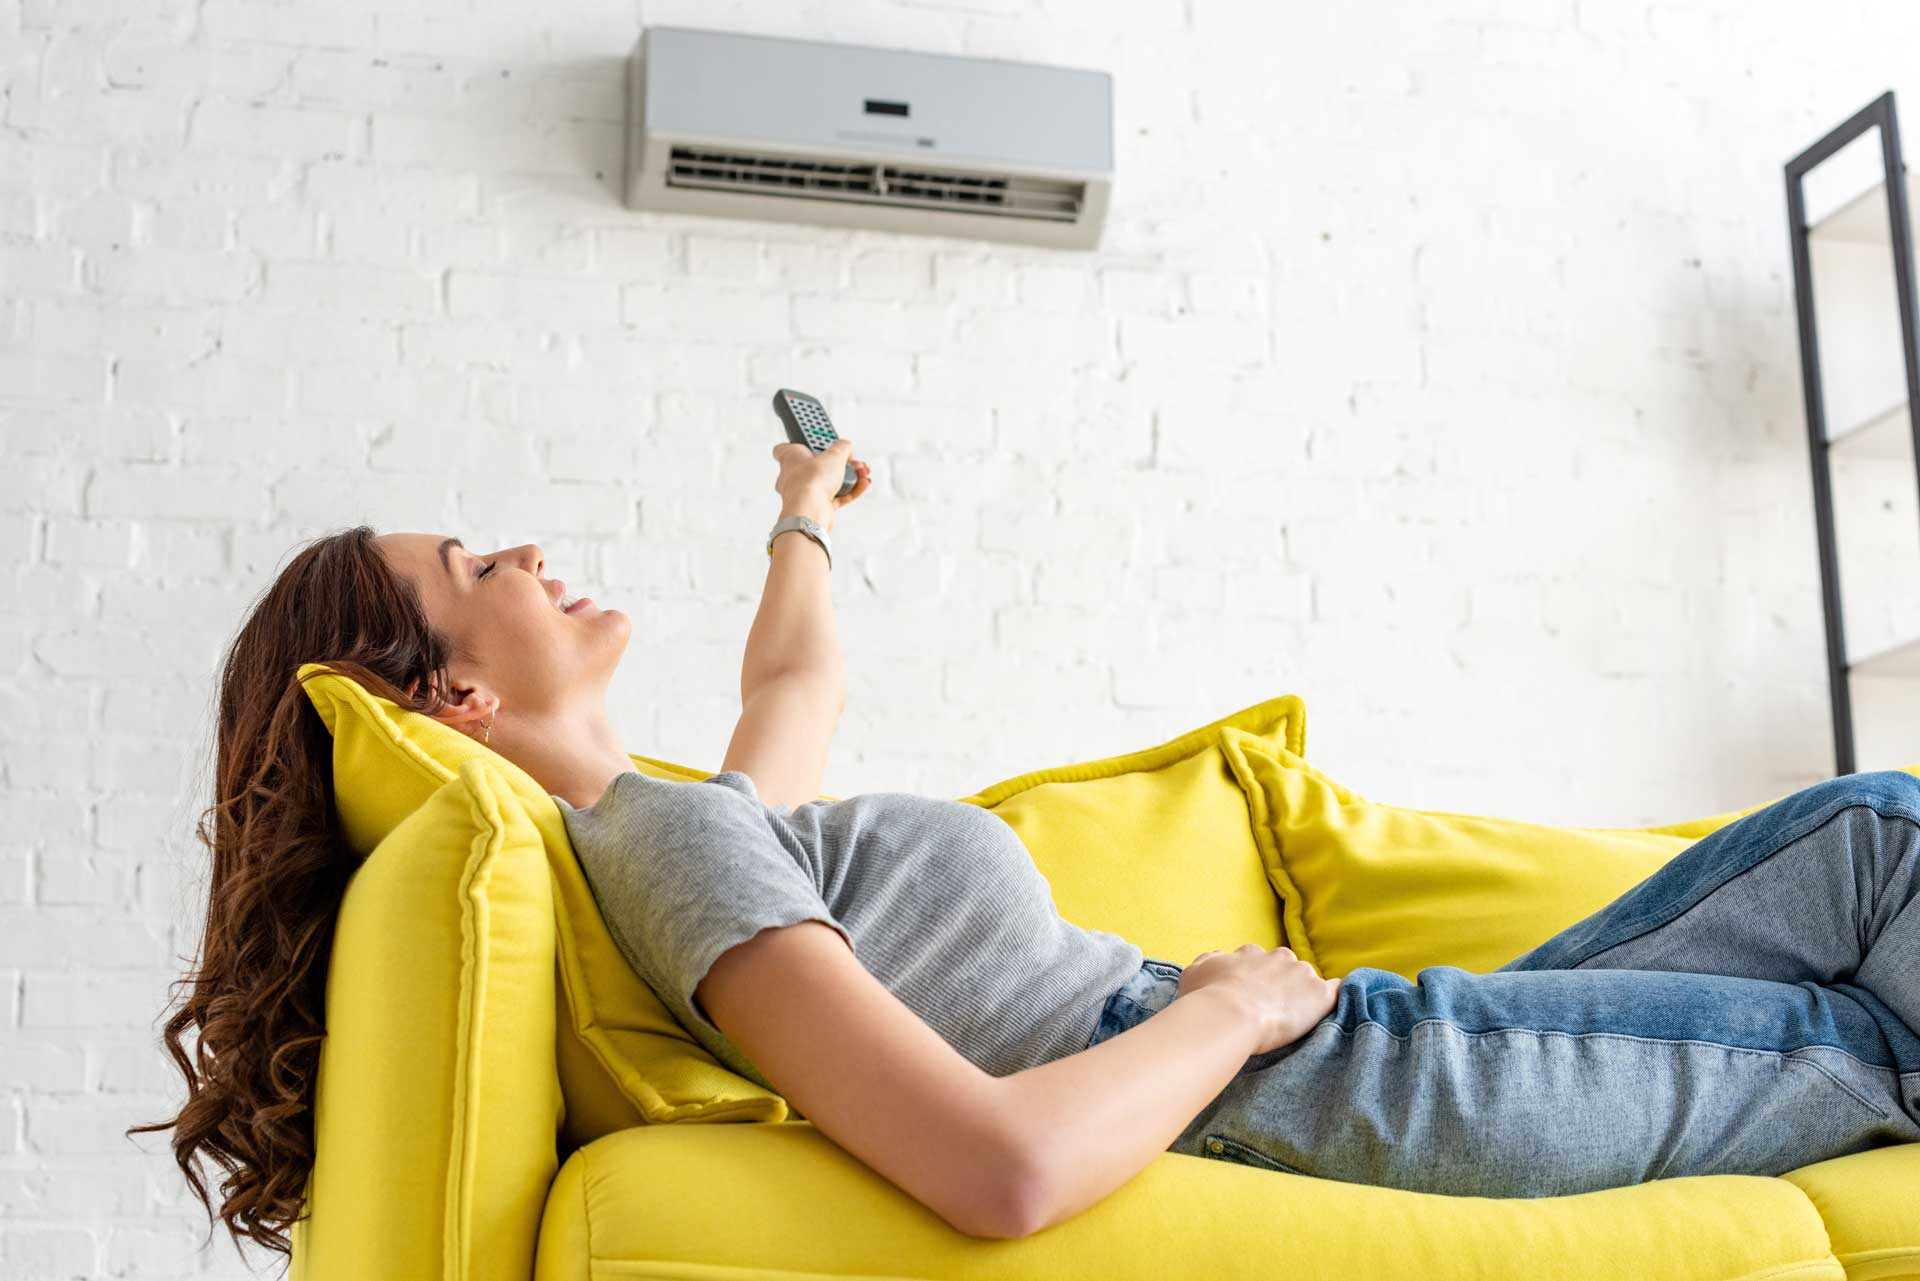 woman lying on the sofa controlling the air conditioning with a remote